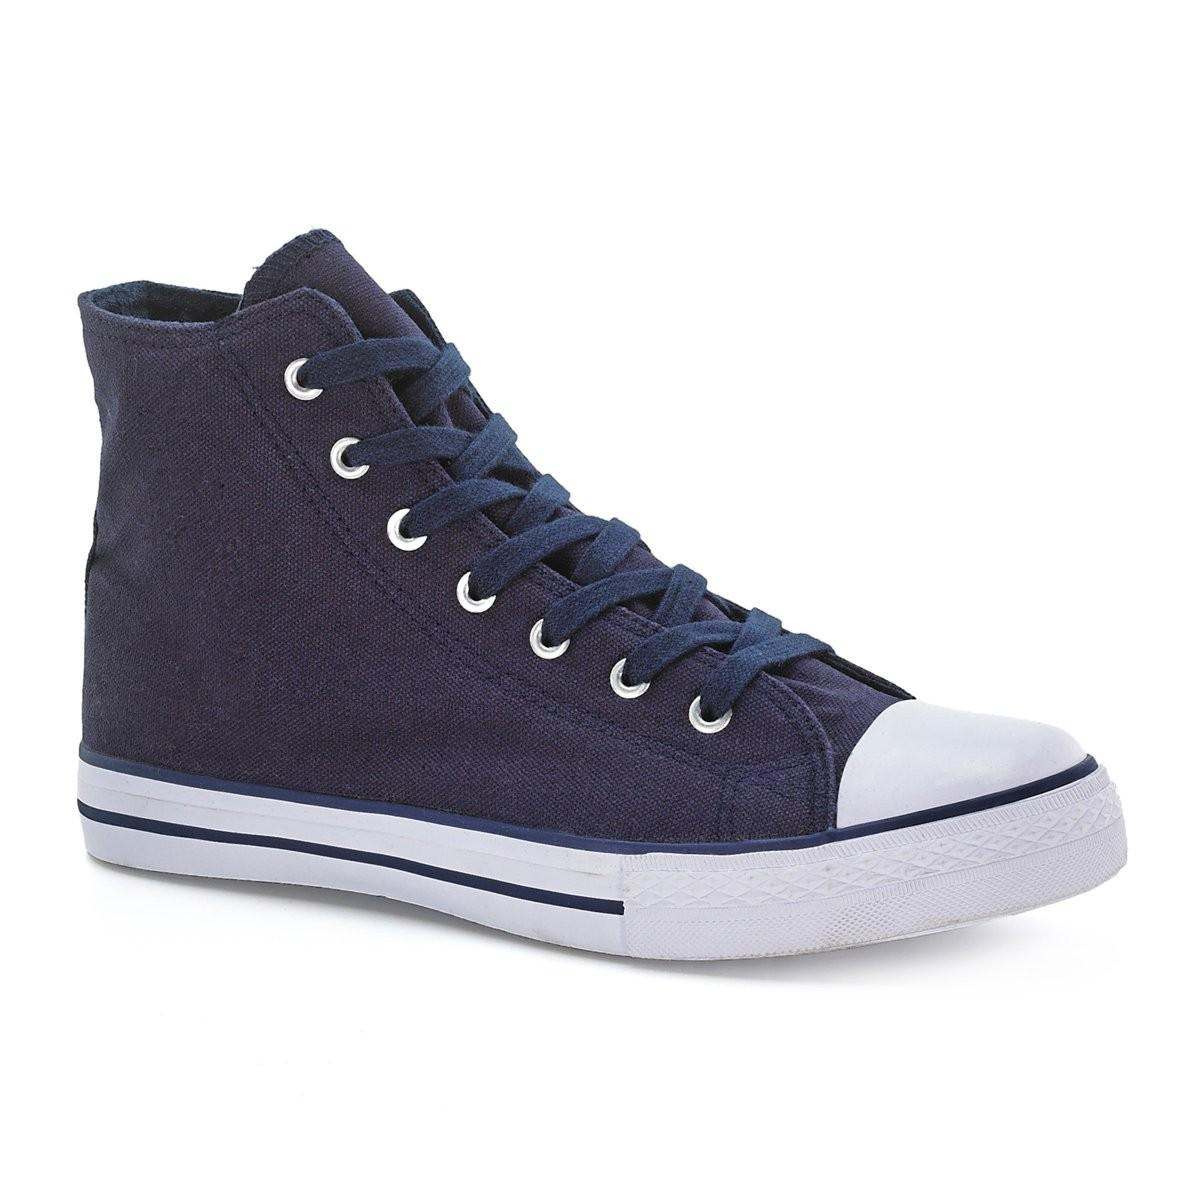 La Redoute Collections Chah 17 Leather Lace-Up High Top Trainers outlet amazing price 6M96JGv3rw